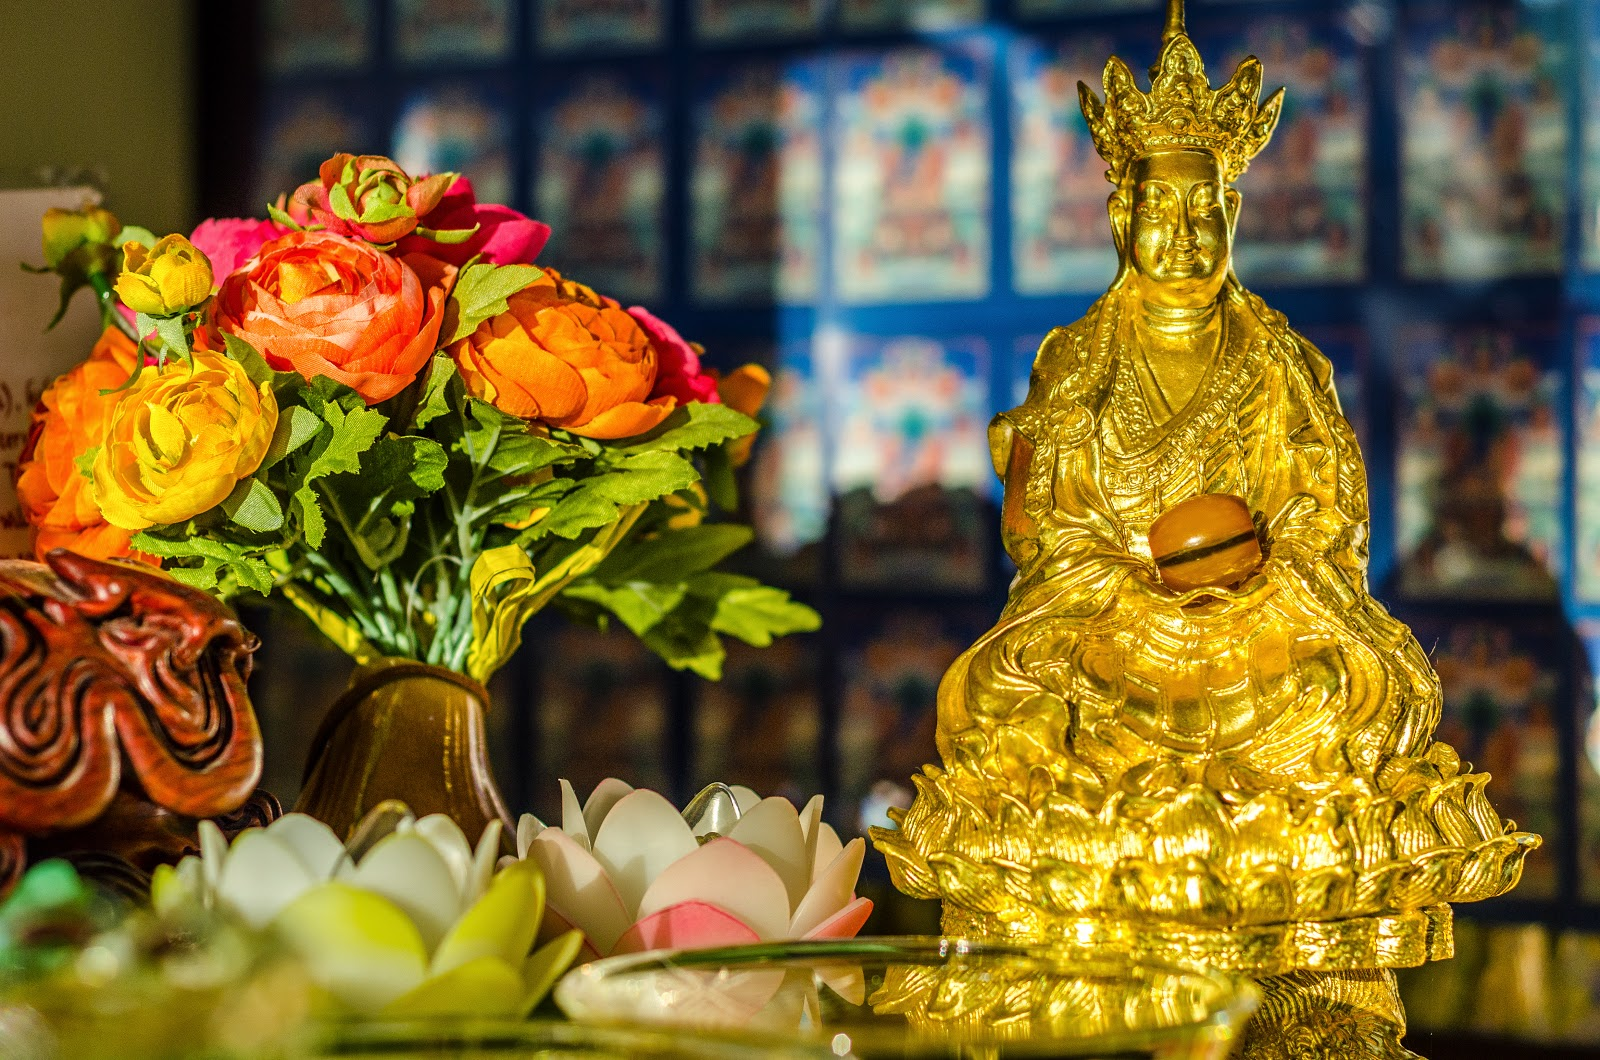 Ksitigarbha statue and extensive offerings at Kachoe Dechen Ling. Photo by Chris Majors.